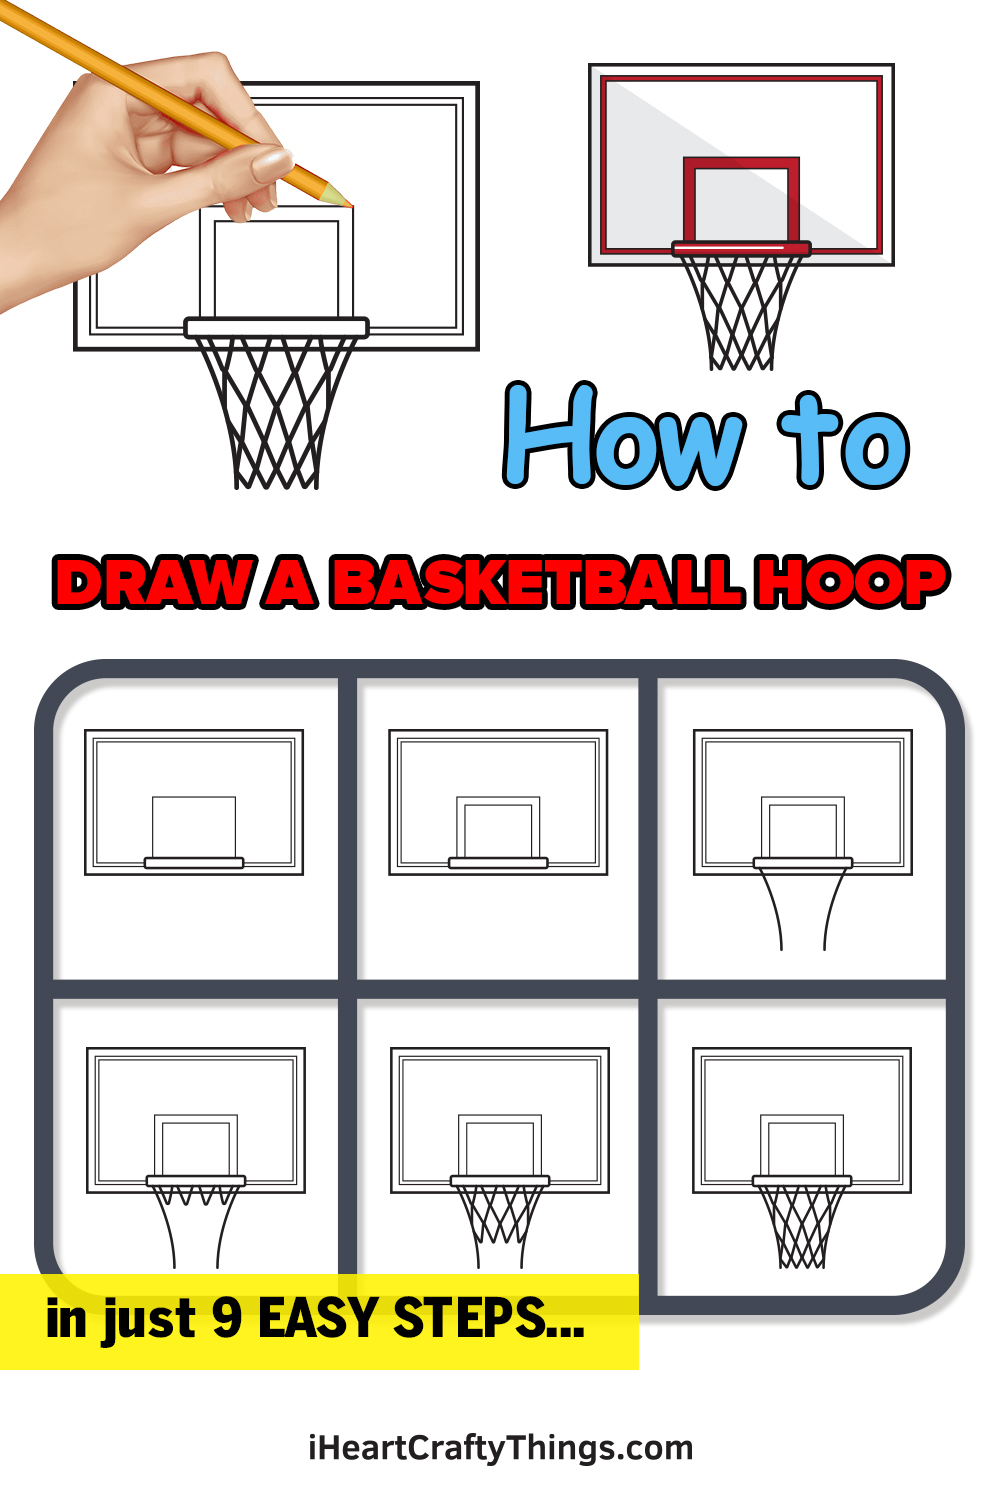 how to draw a basketball hoop in 9 easy steps